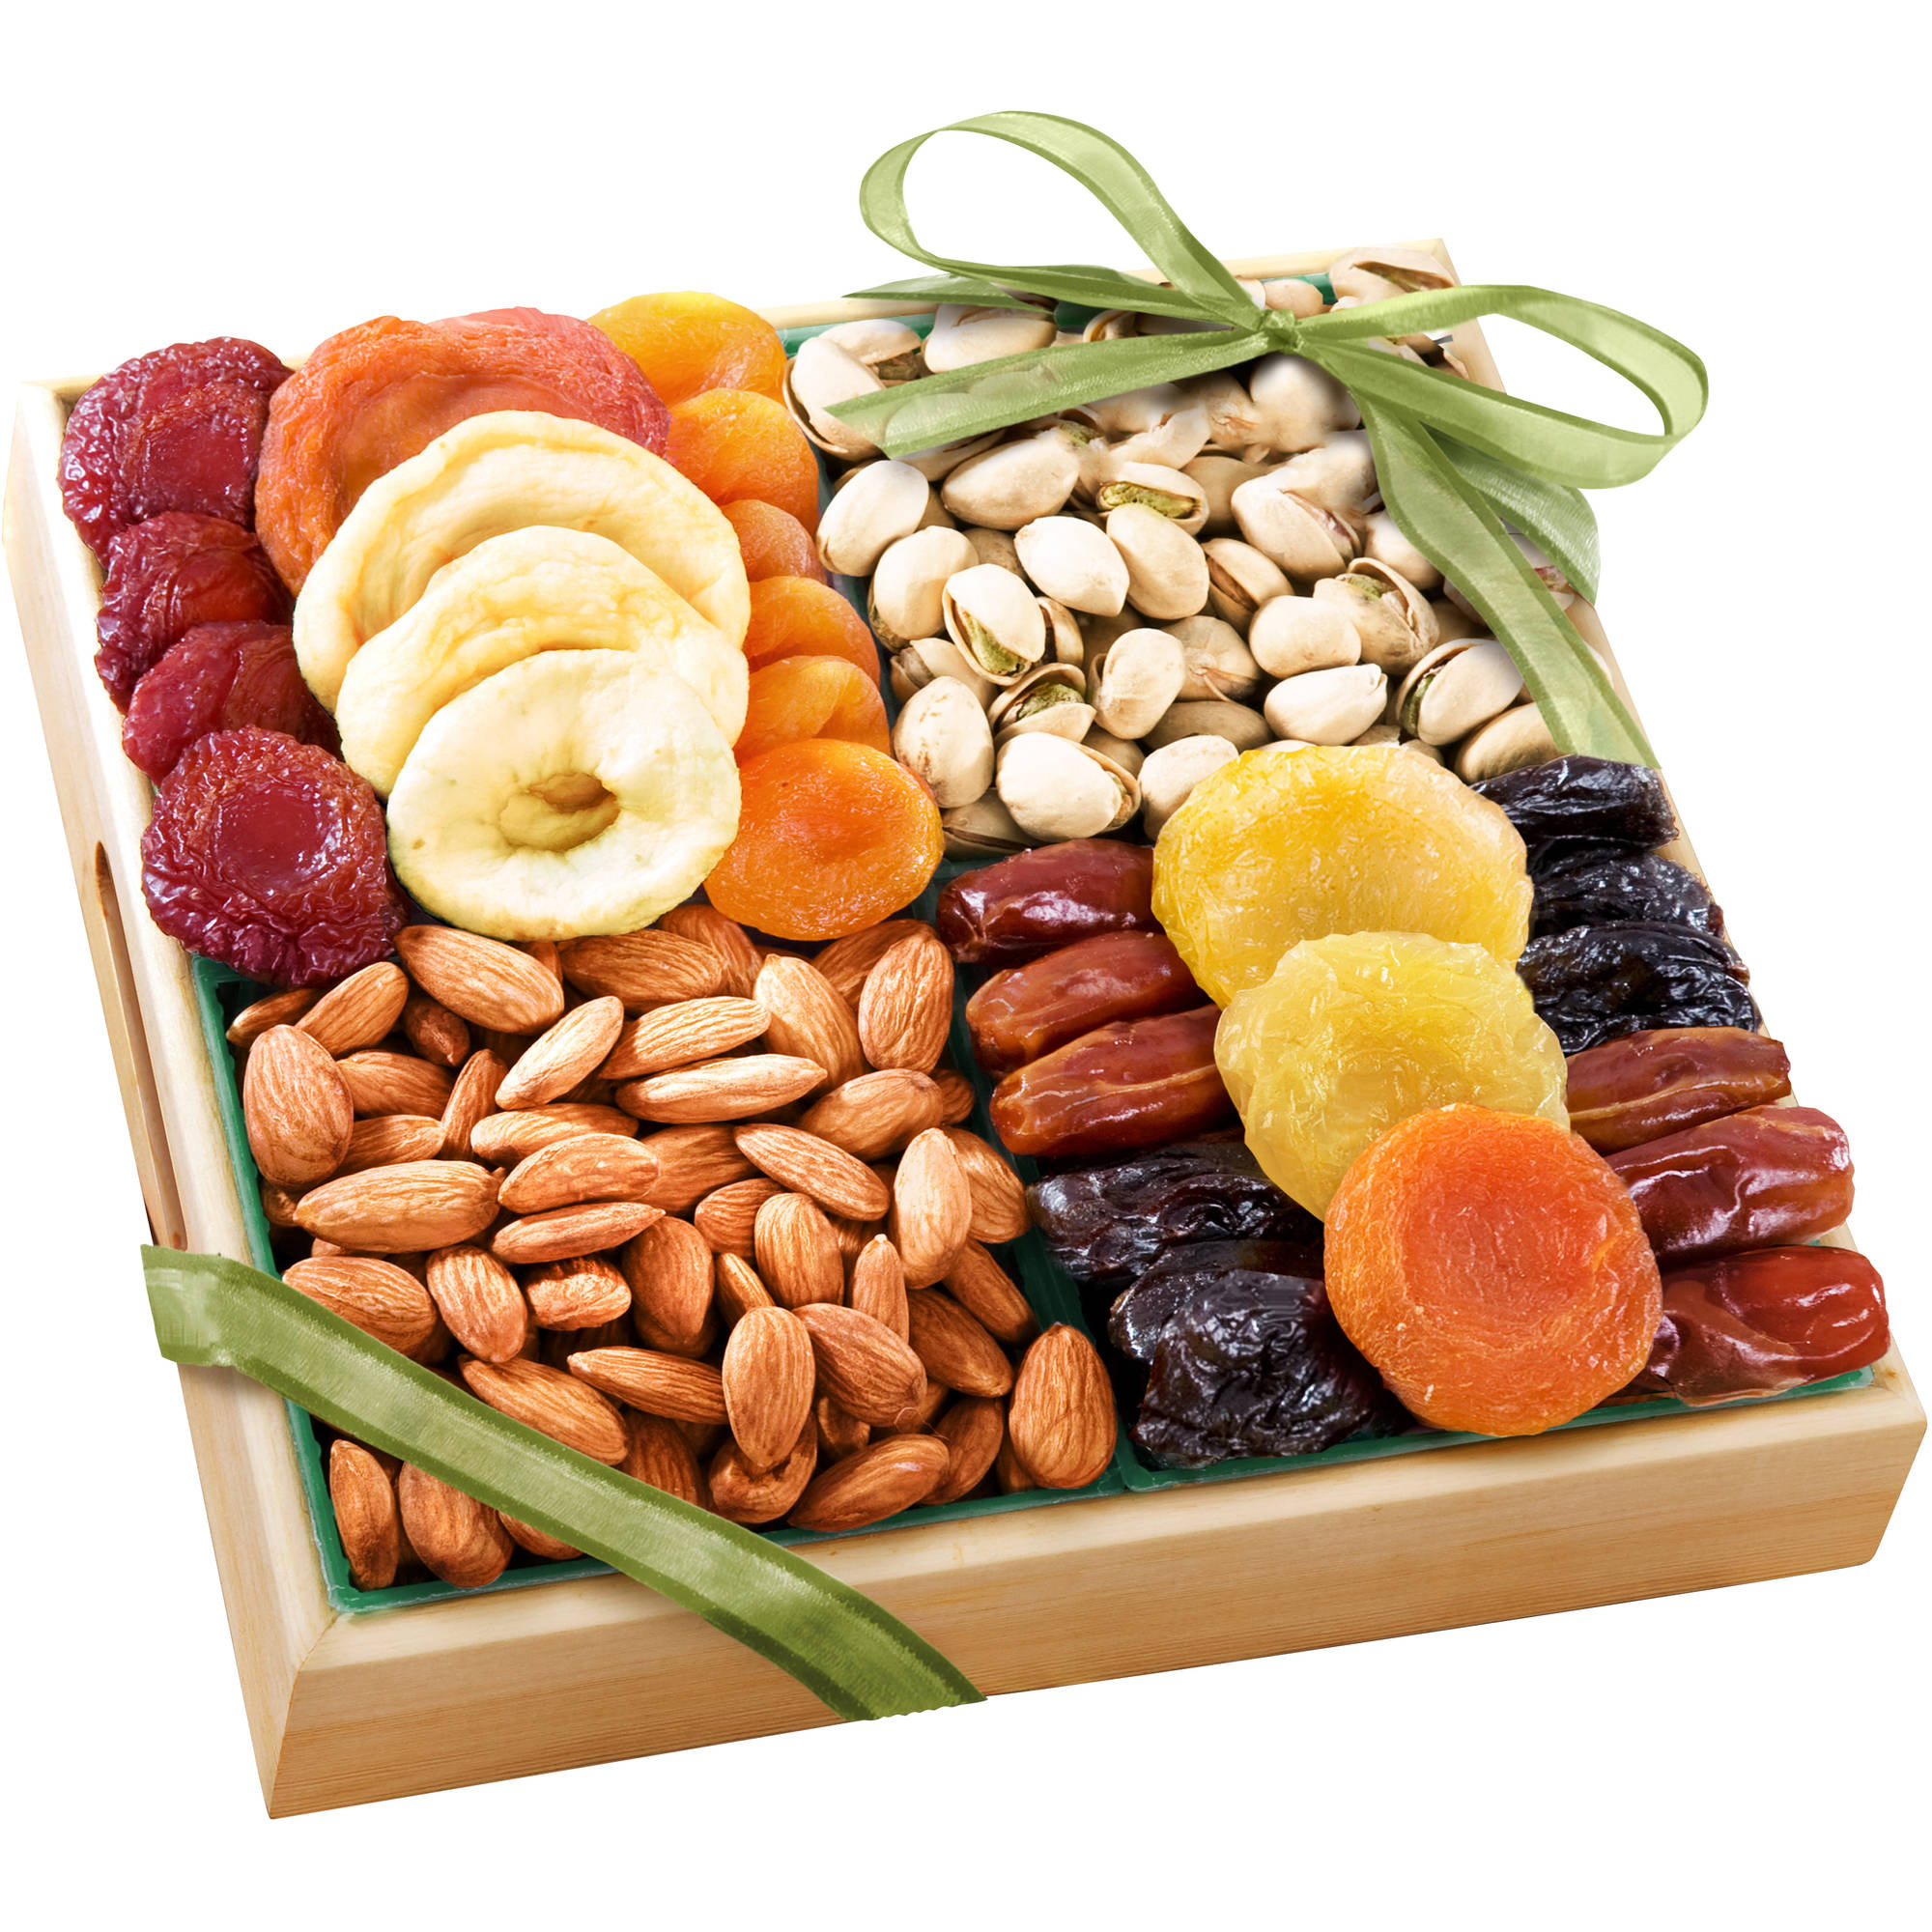 Golden State Fruits Pacific Coast Classic Dried Fruit and Nut Gift Set